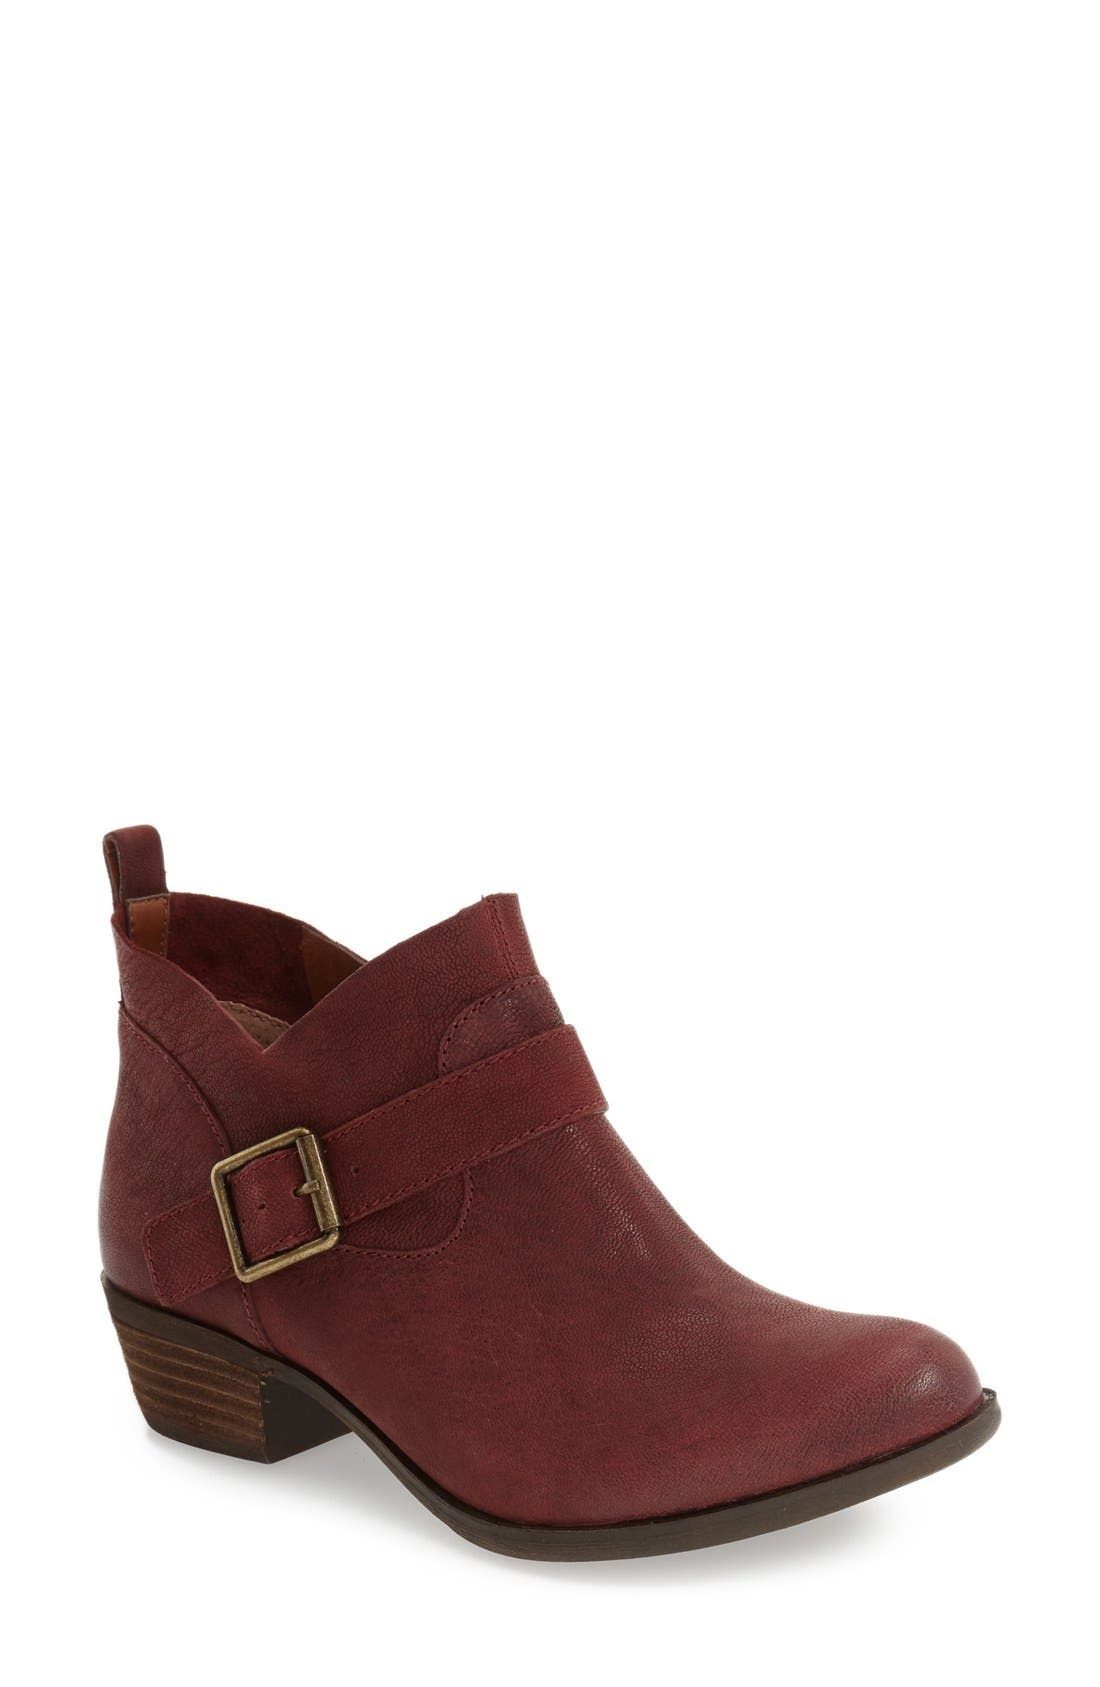 Alternate Image 1 Selected - Lucky Brand 'Boomer' Western Bootie (Women)